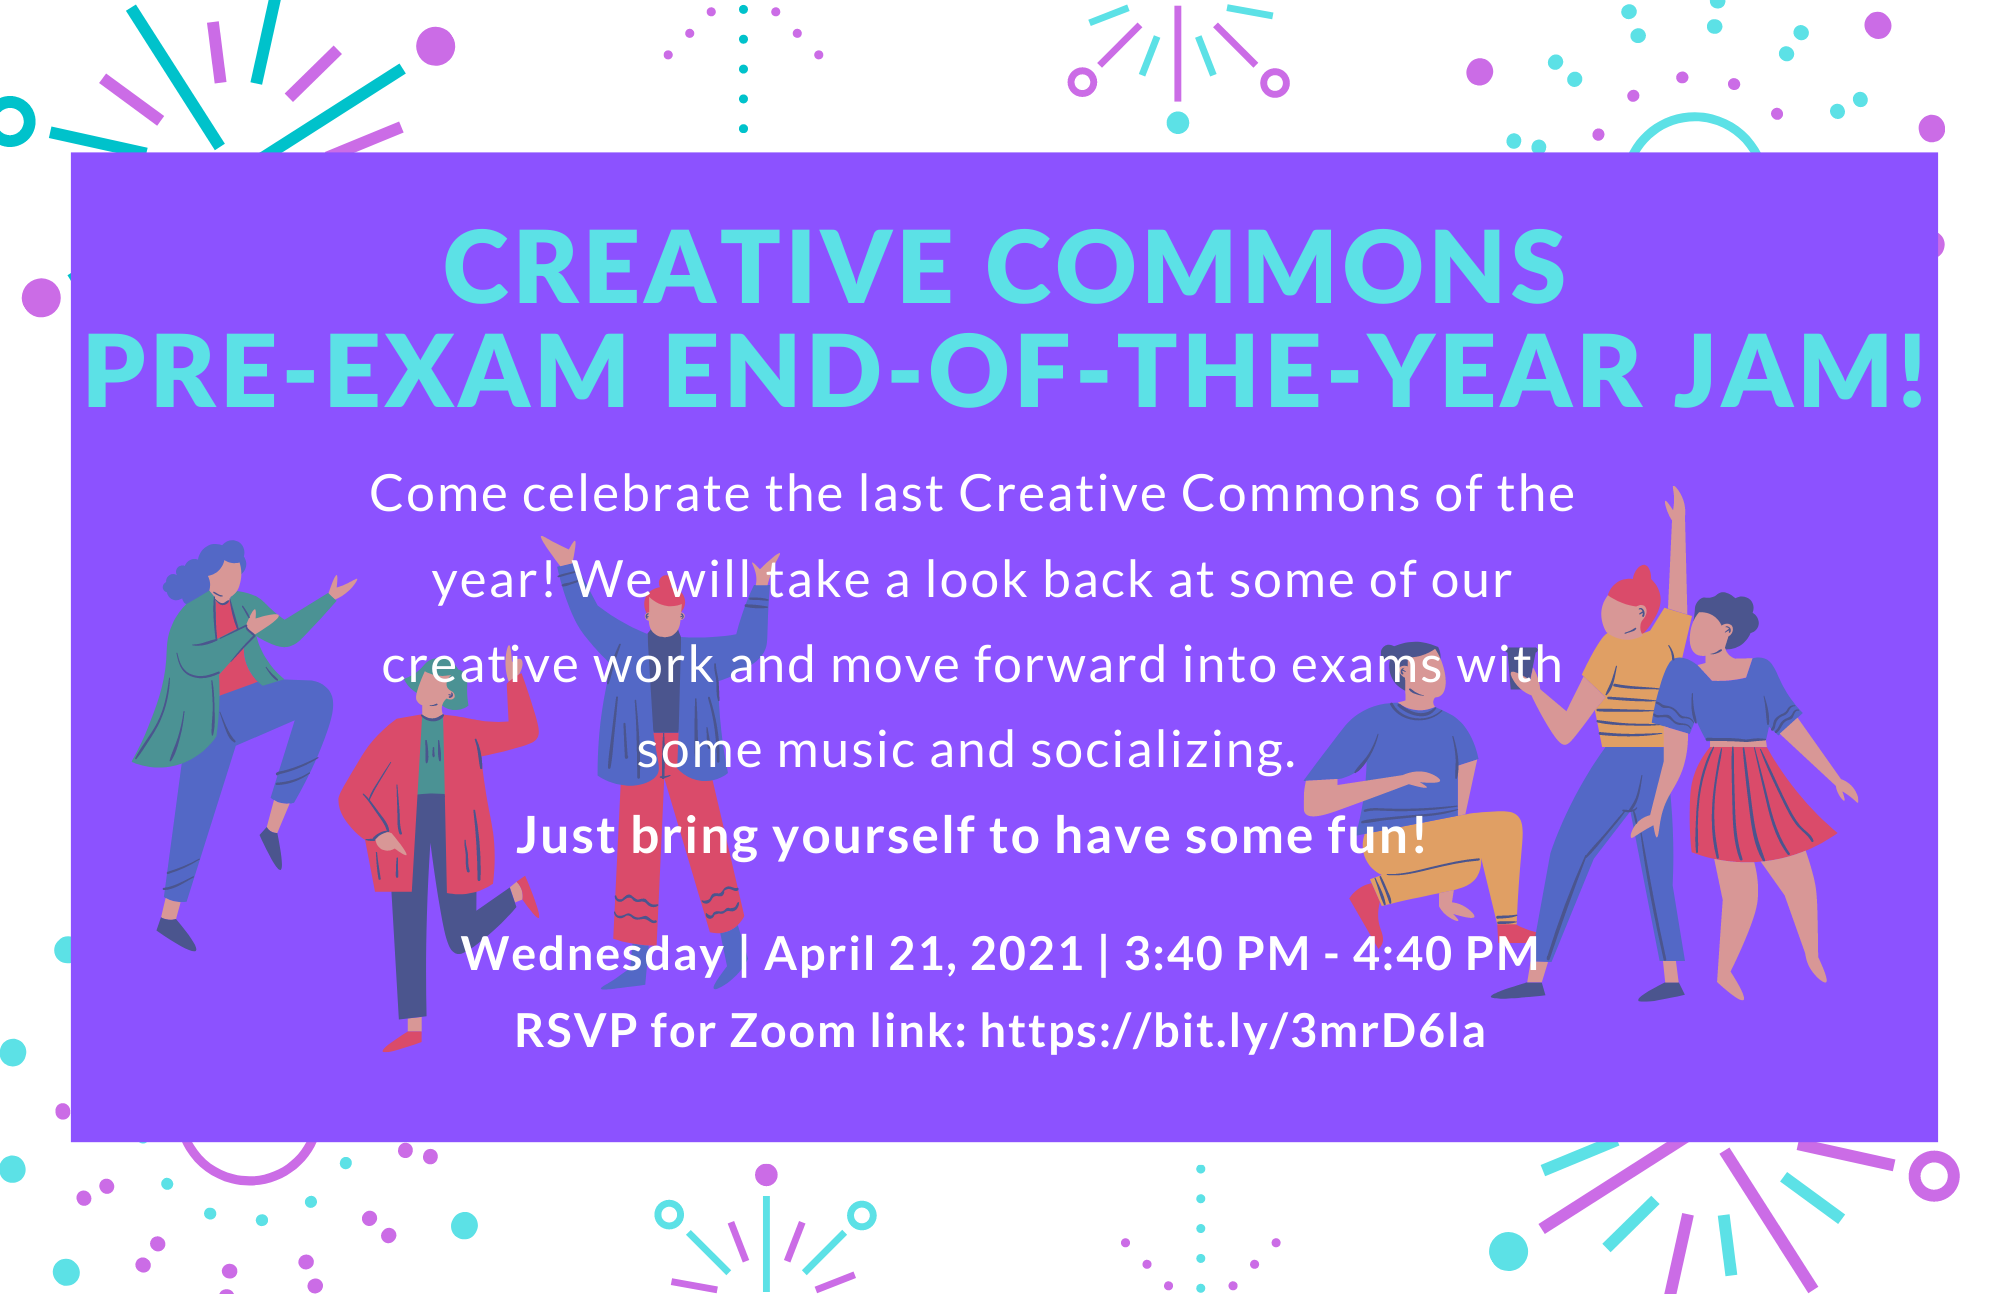 Come celebrate our last creative commons of the year.